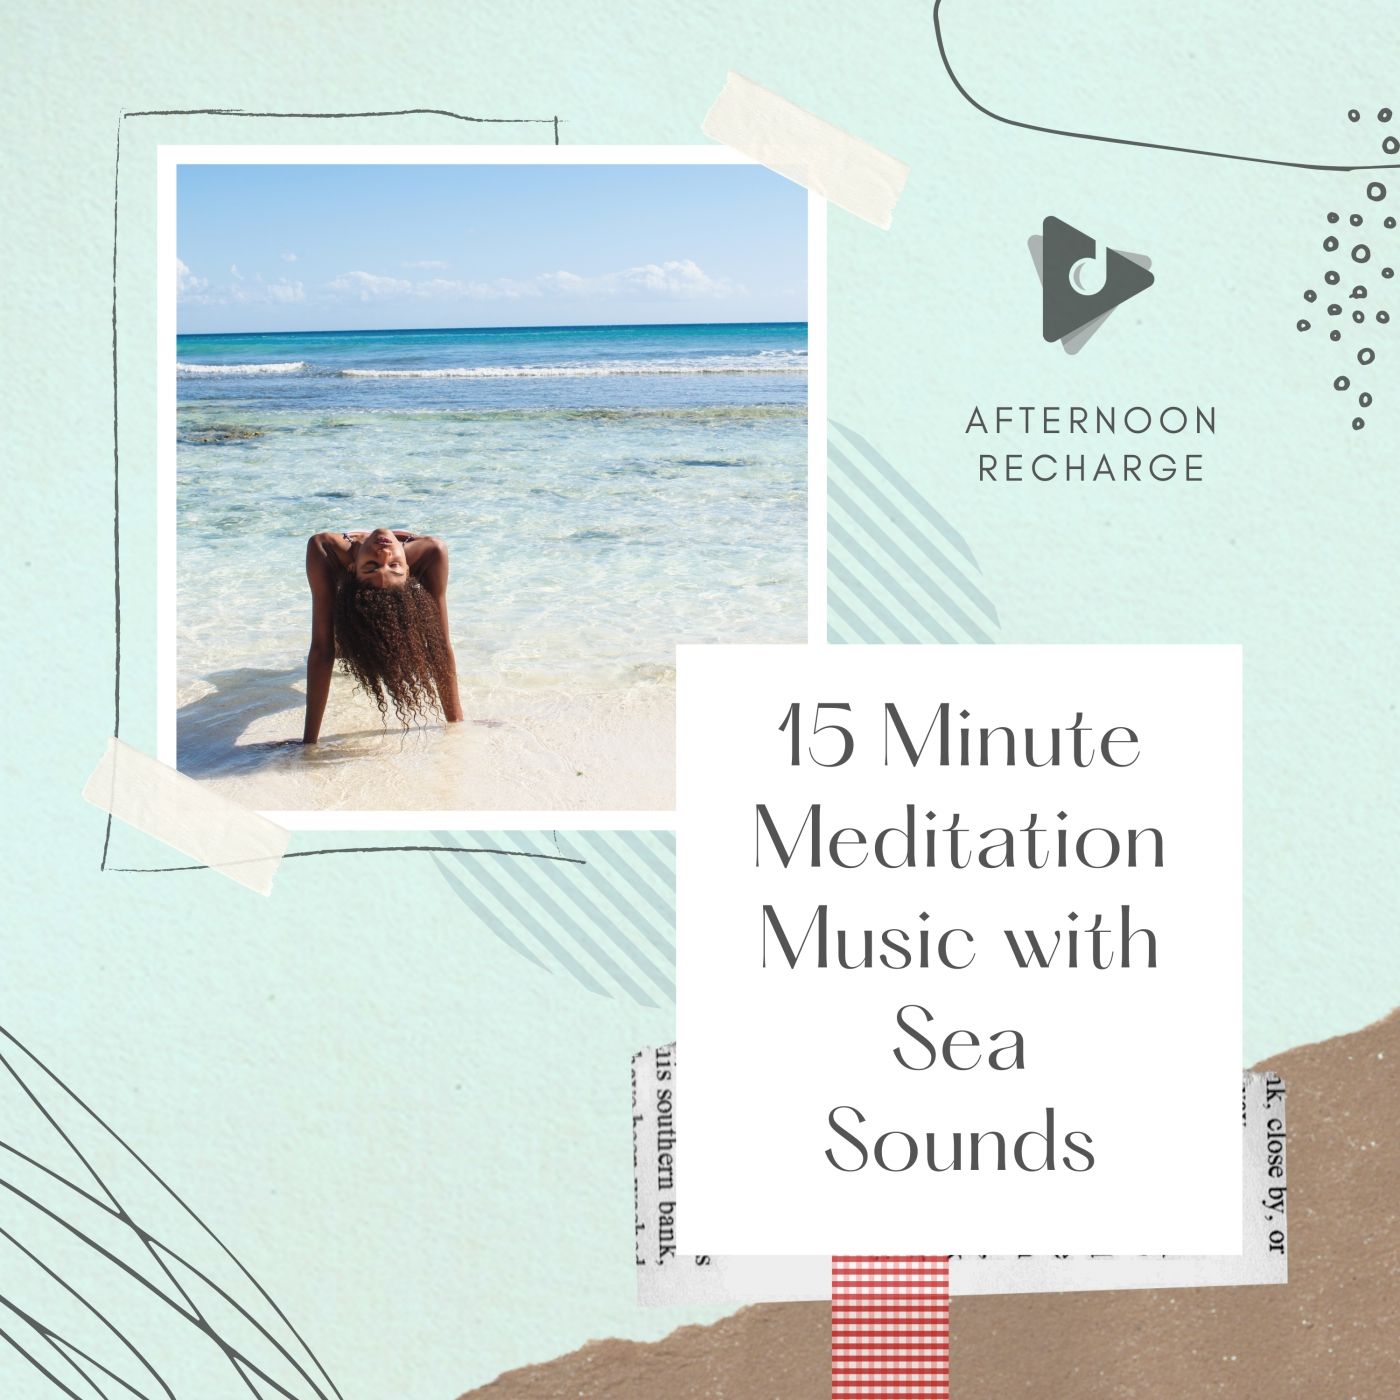 15 Minute Meditation Music with Sea Sounds